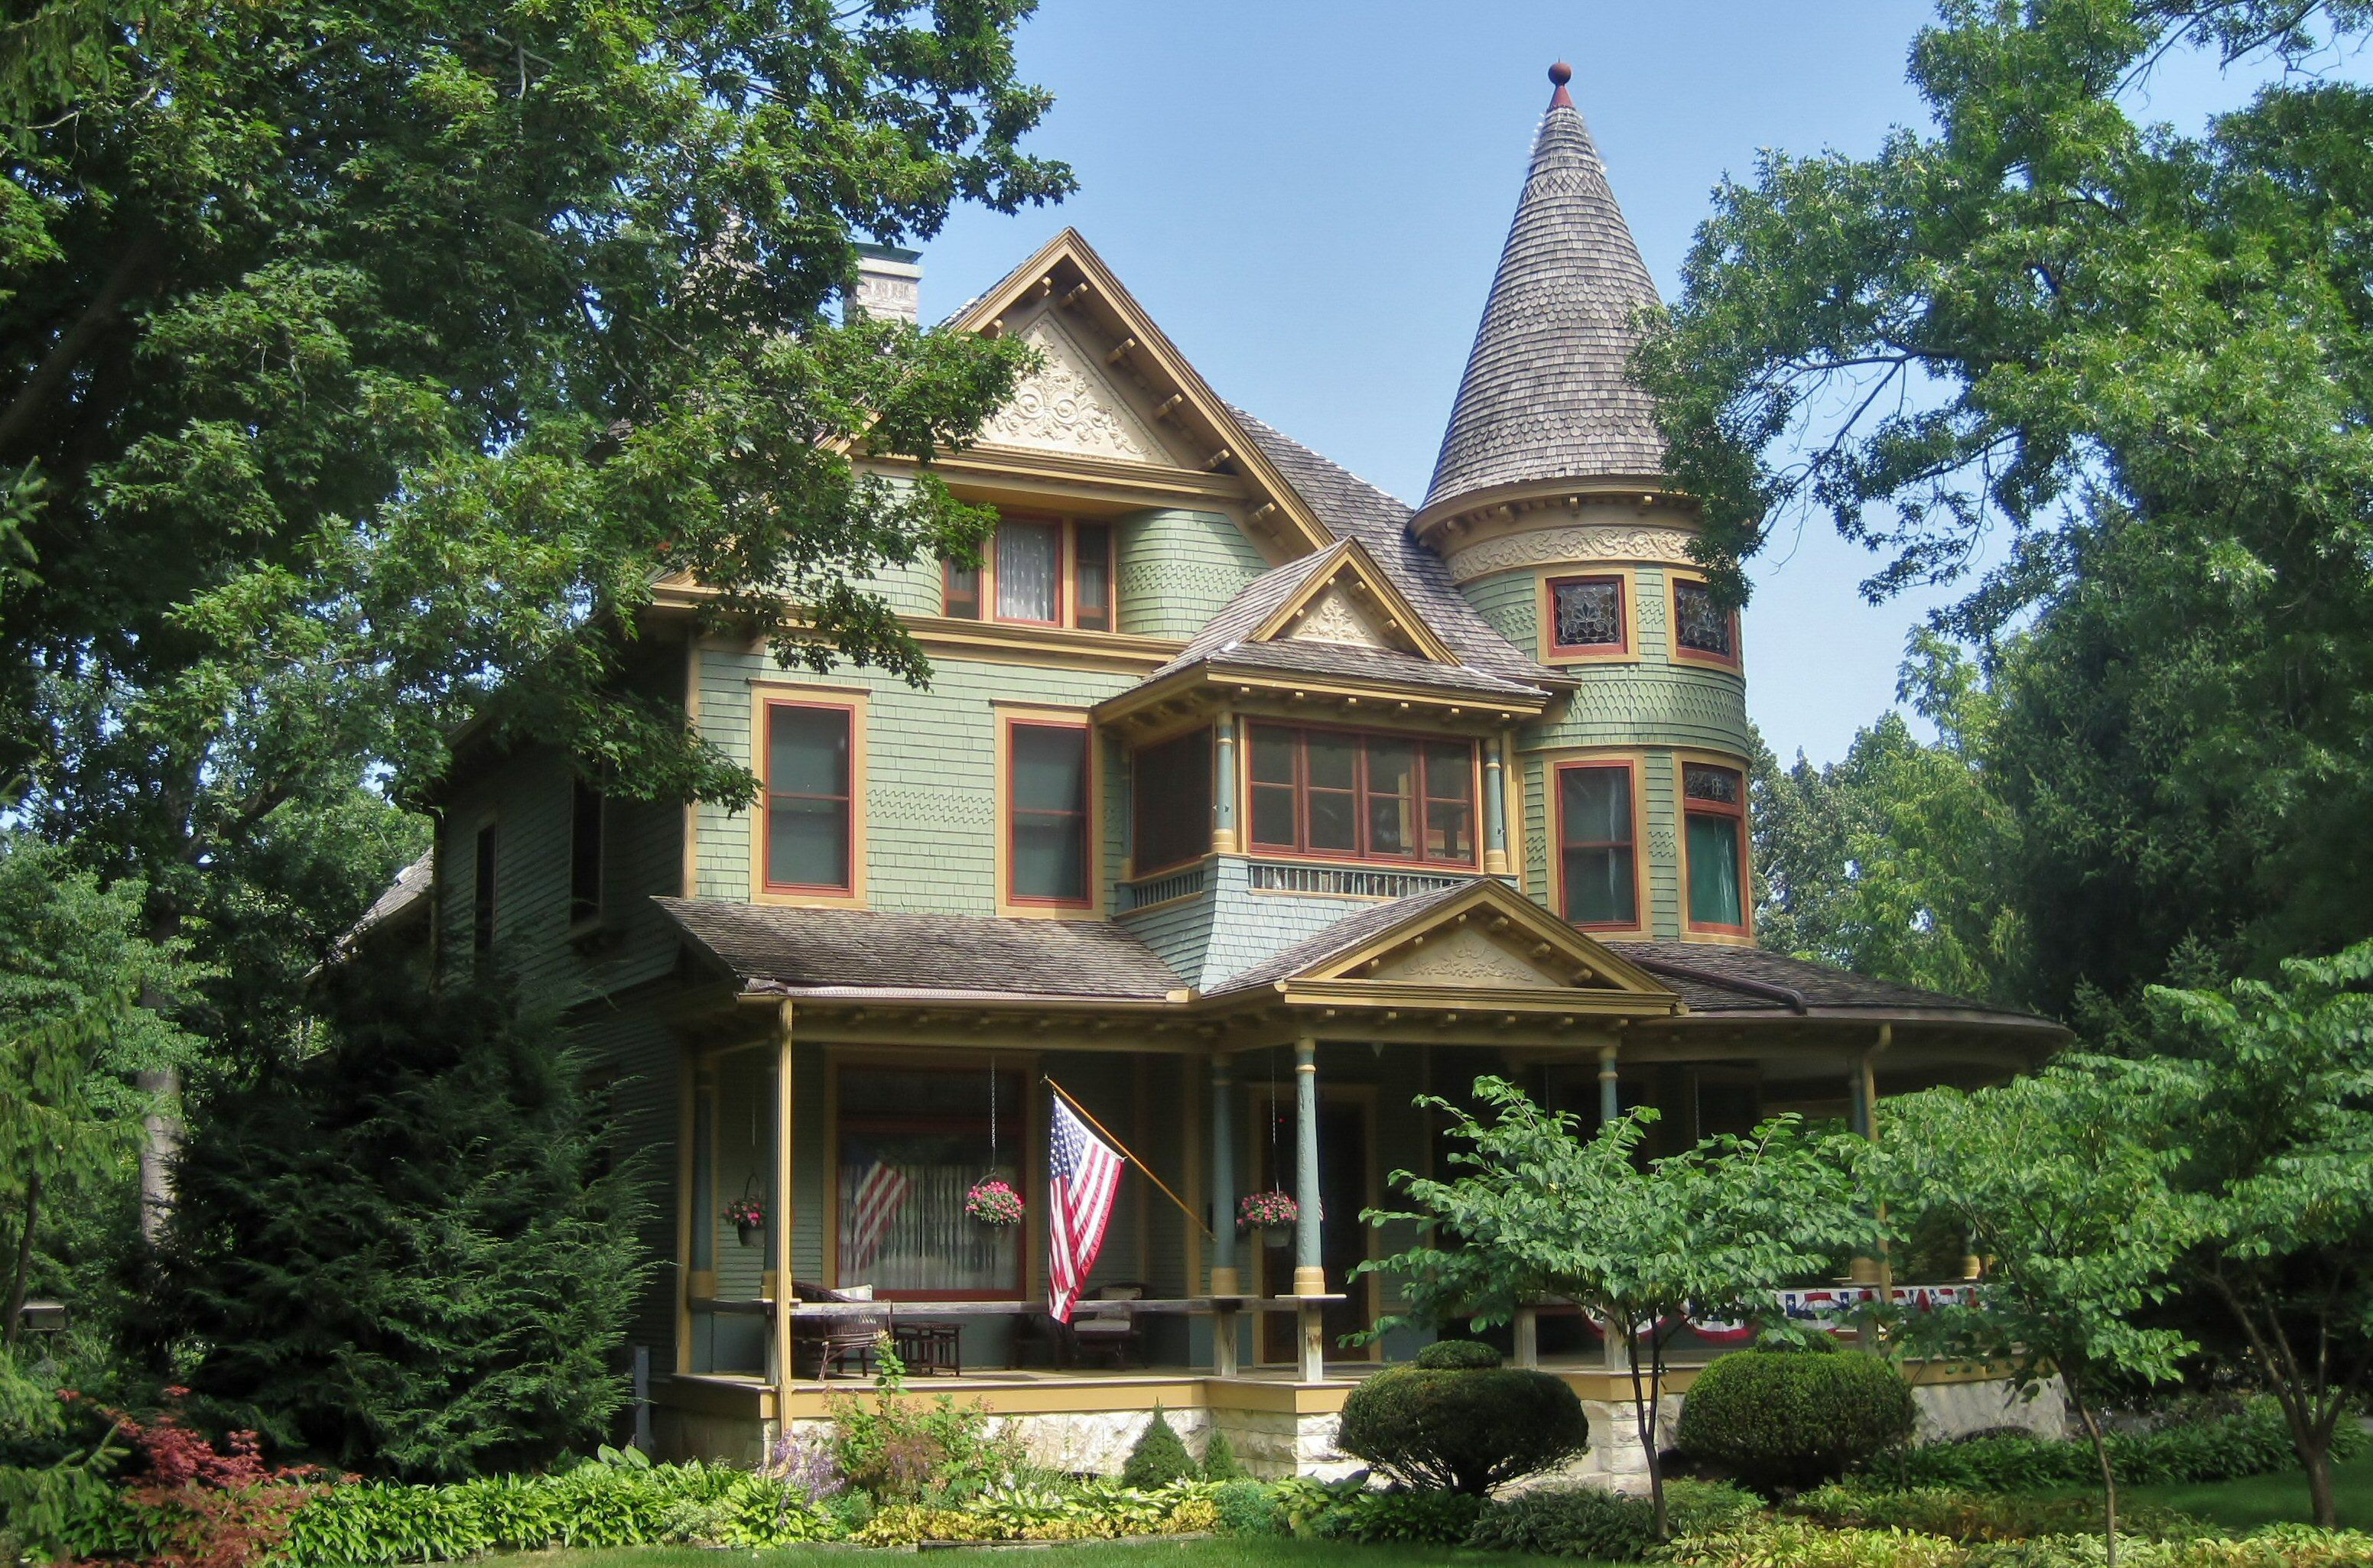 multi-story green sided house with red and yellow trim, front gable, pediments, round tower, front porch